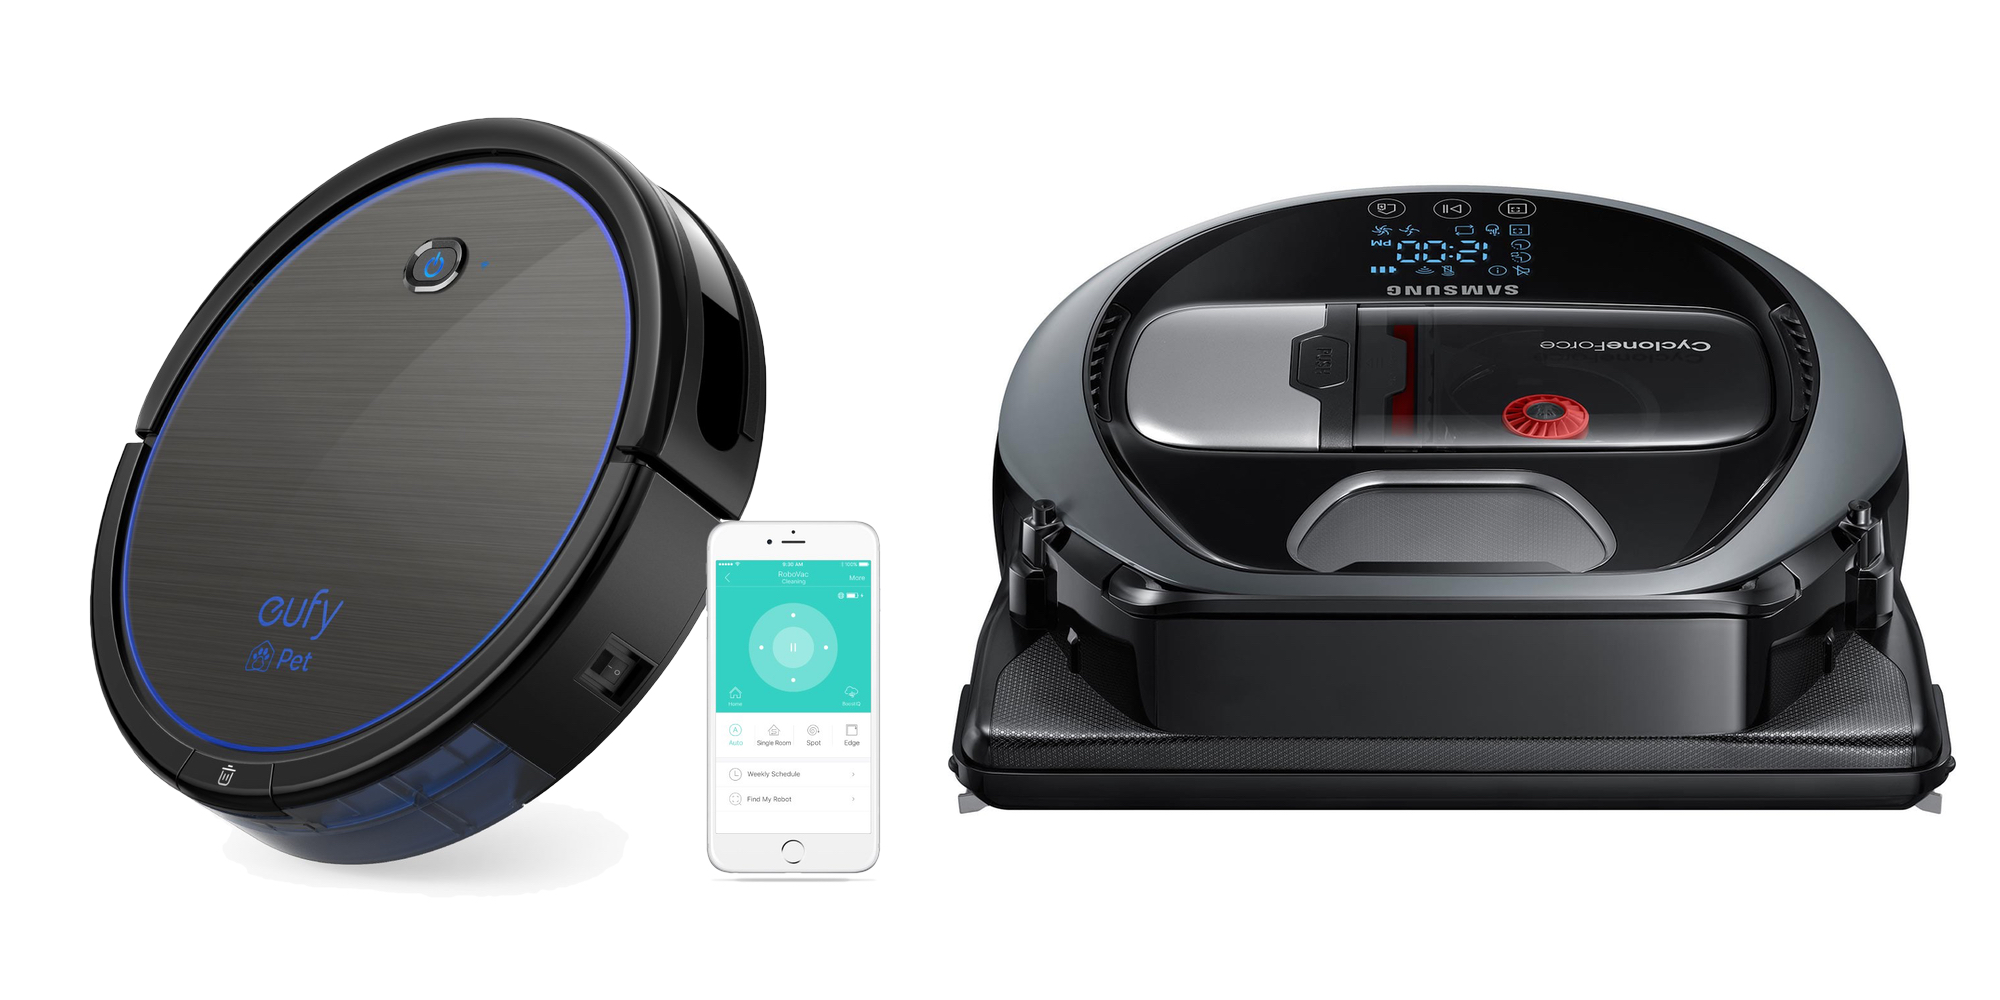 Bring home Anker's Alexa-enabled RoboVac 11c for $200 shipped (Reg. $250), more from $299